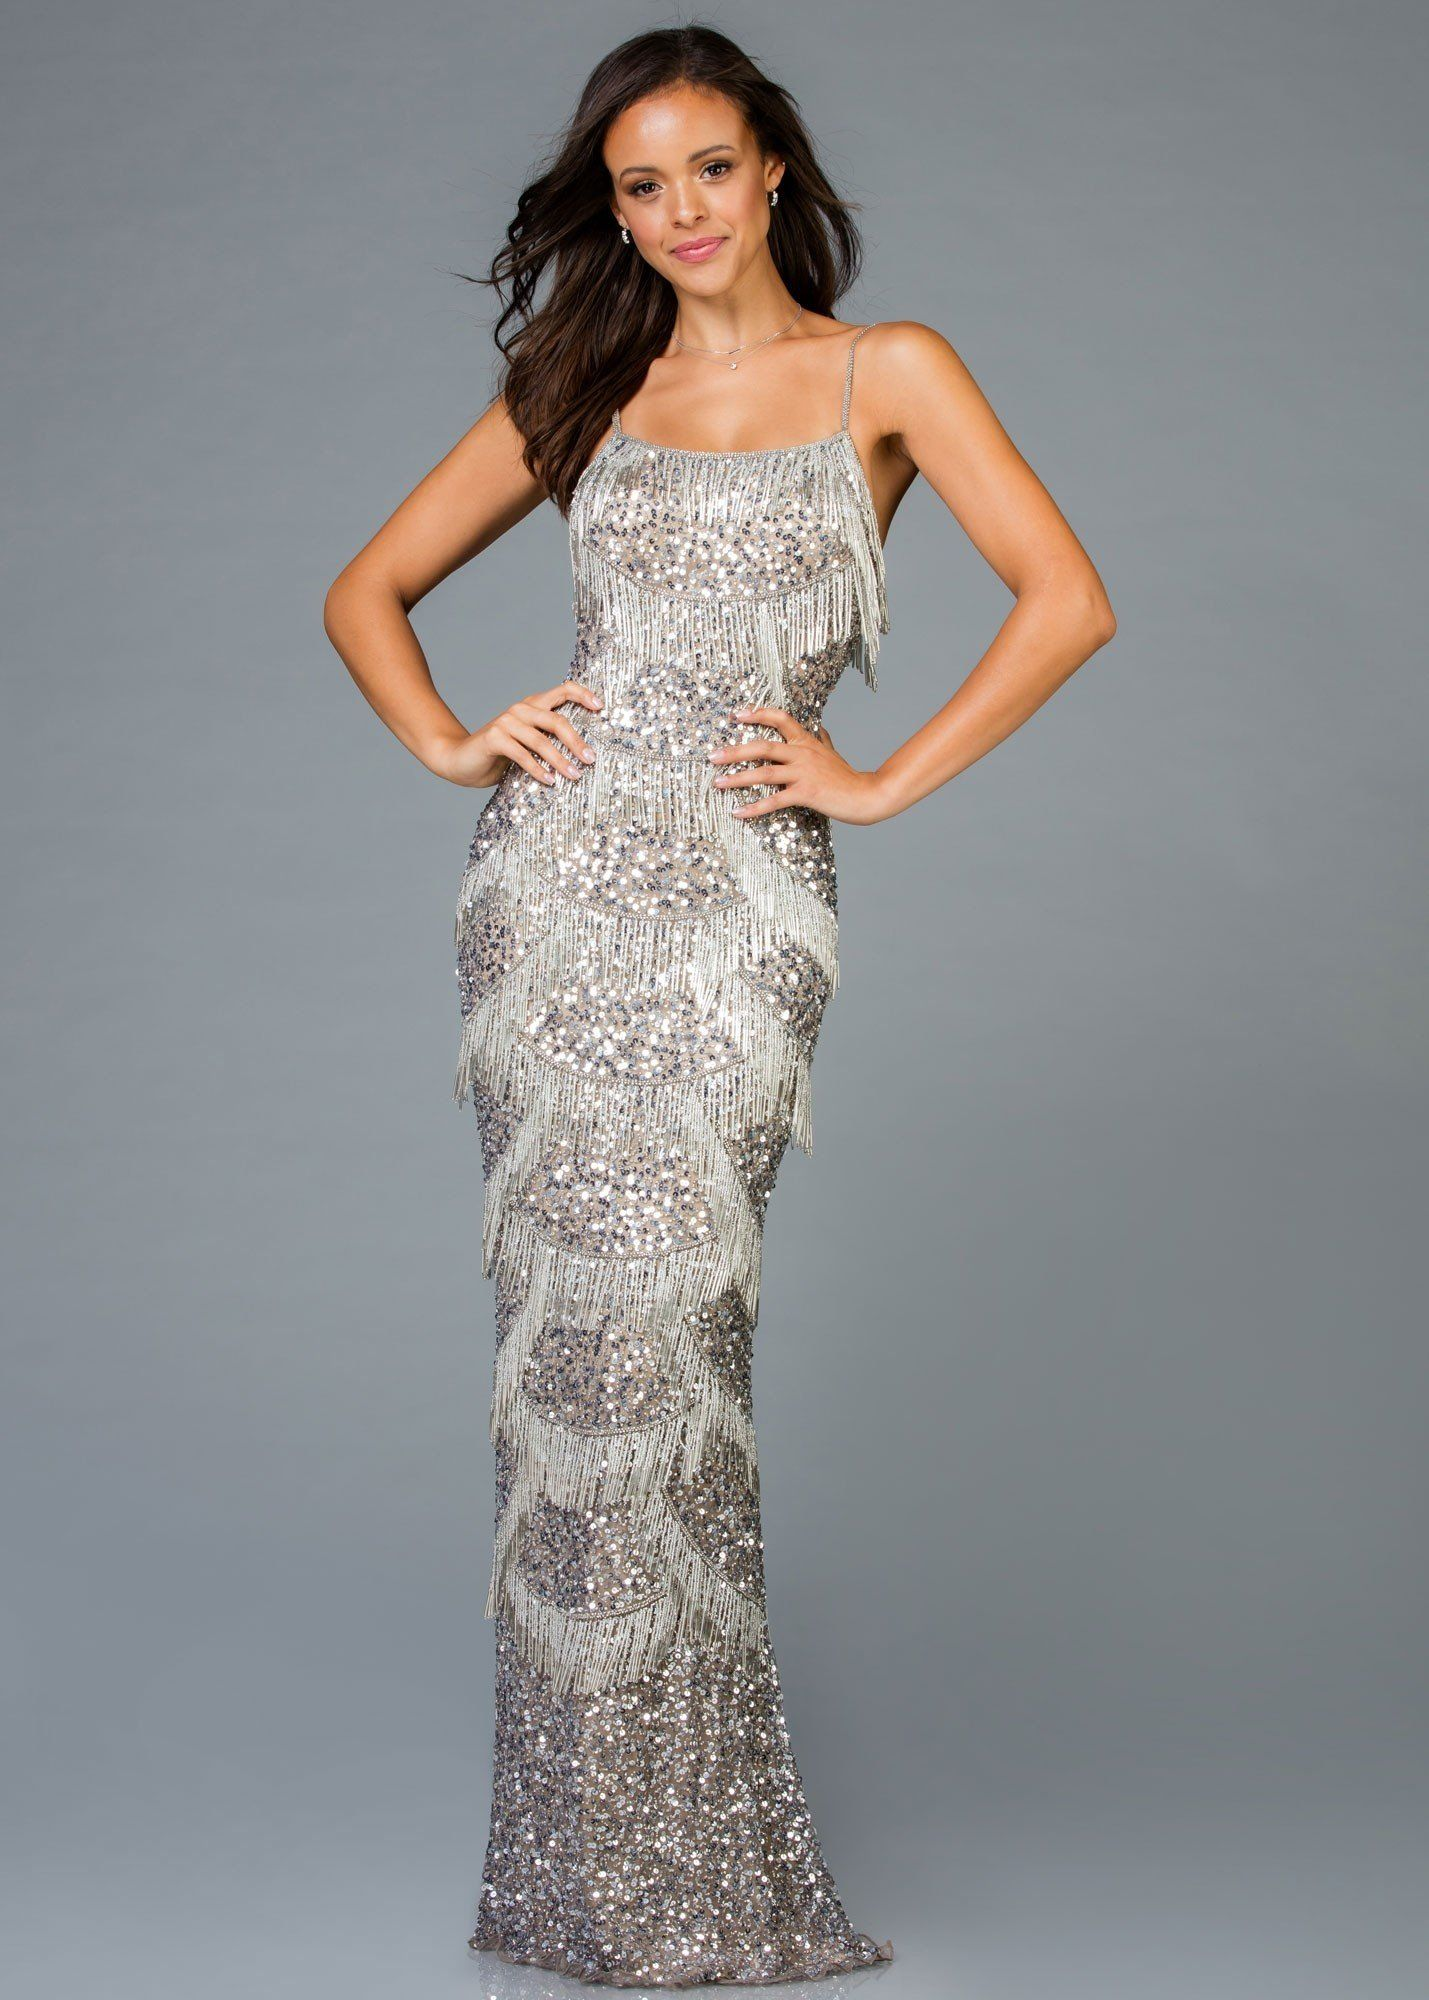 55757d41171ec Scala 48934 Scalloped Fringe Sequin Gown in 2019 | 2019 Prom Dresses ...